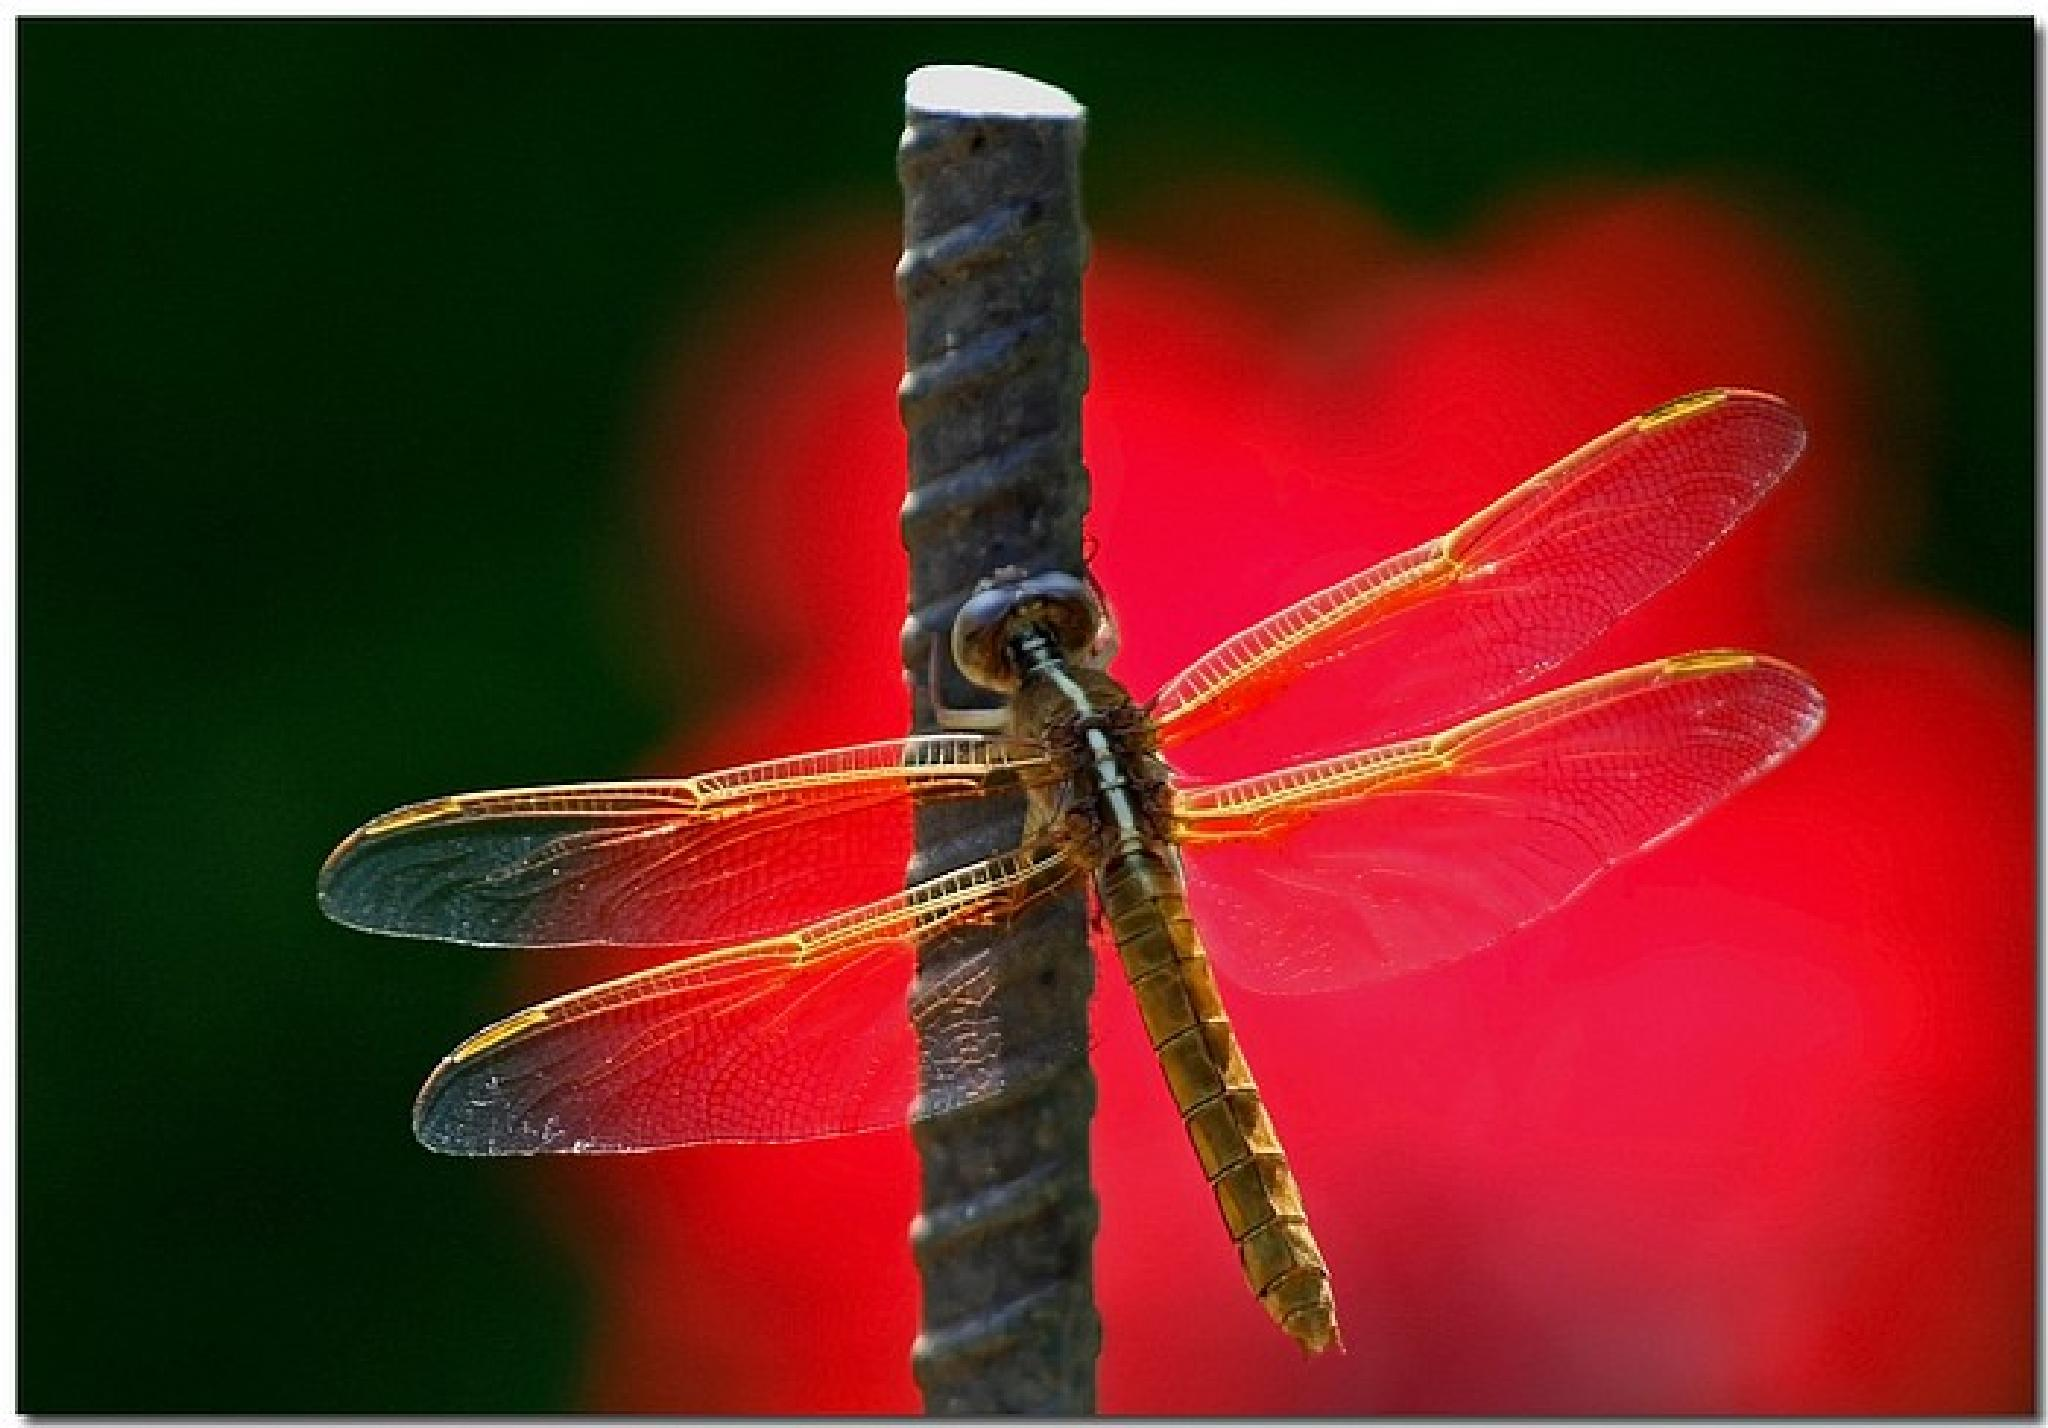 Dragonfly On Rebar by king.chester0